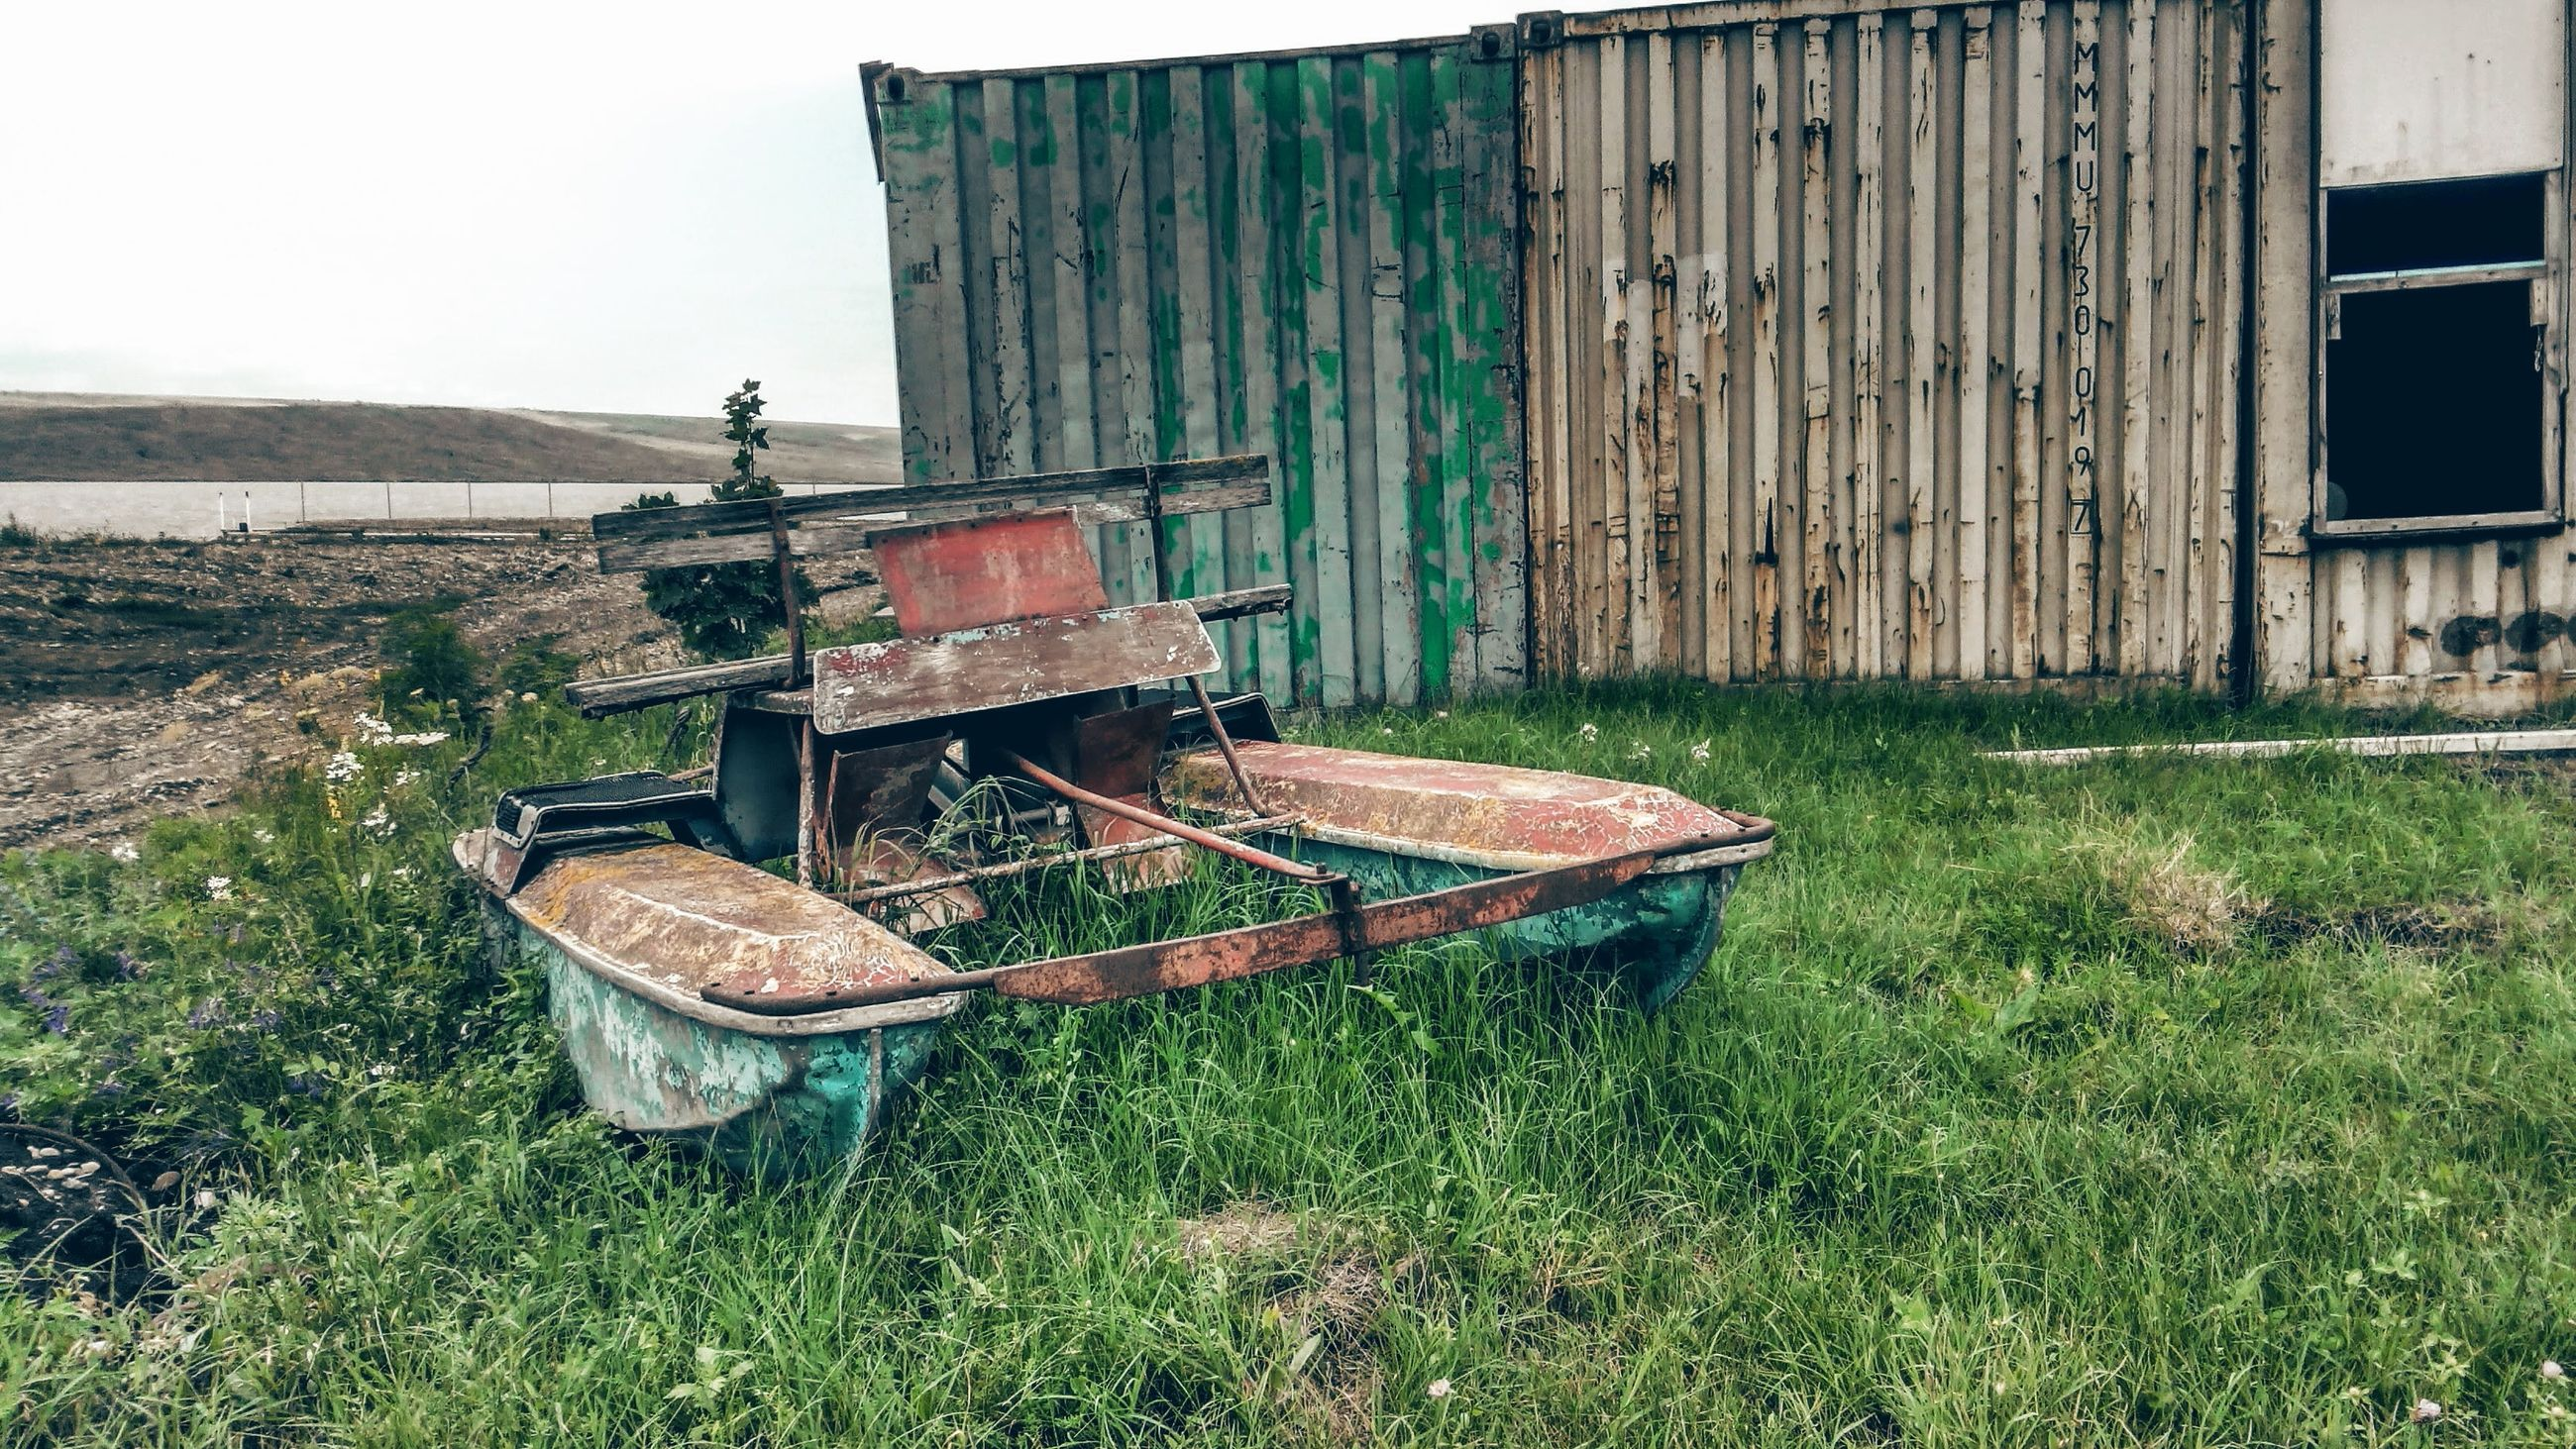 building exterior, built structure, architecture, grass, abandoned, house, damaged, obsolete, old, water, plant, run-down, deterioration, day, residential structure, outdoors, no people, field, bad condition, grassy